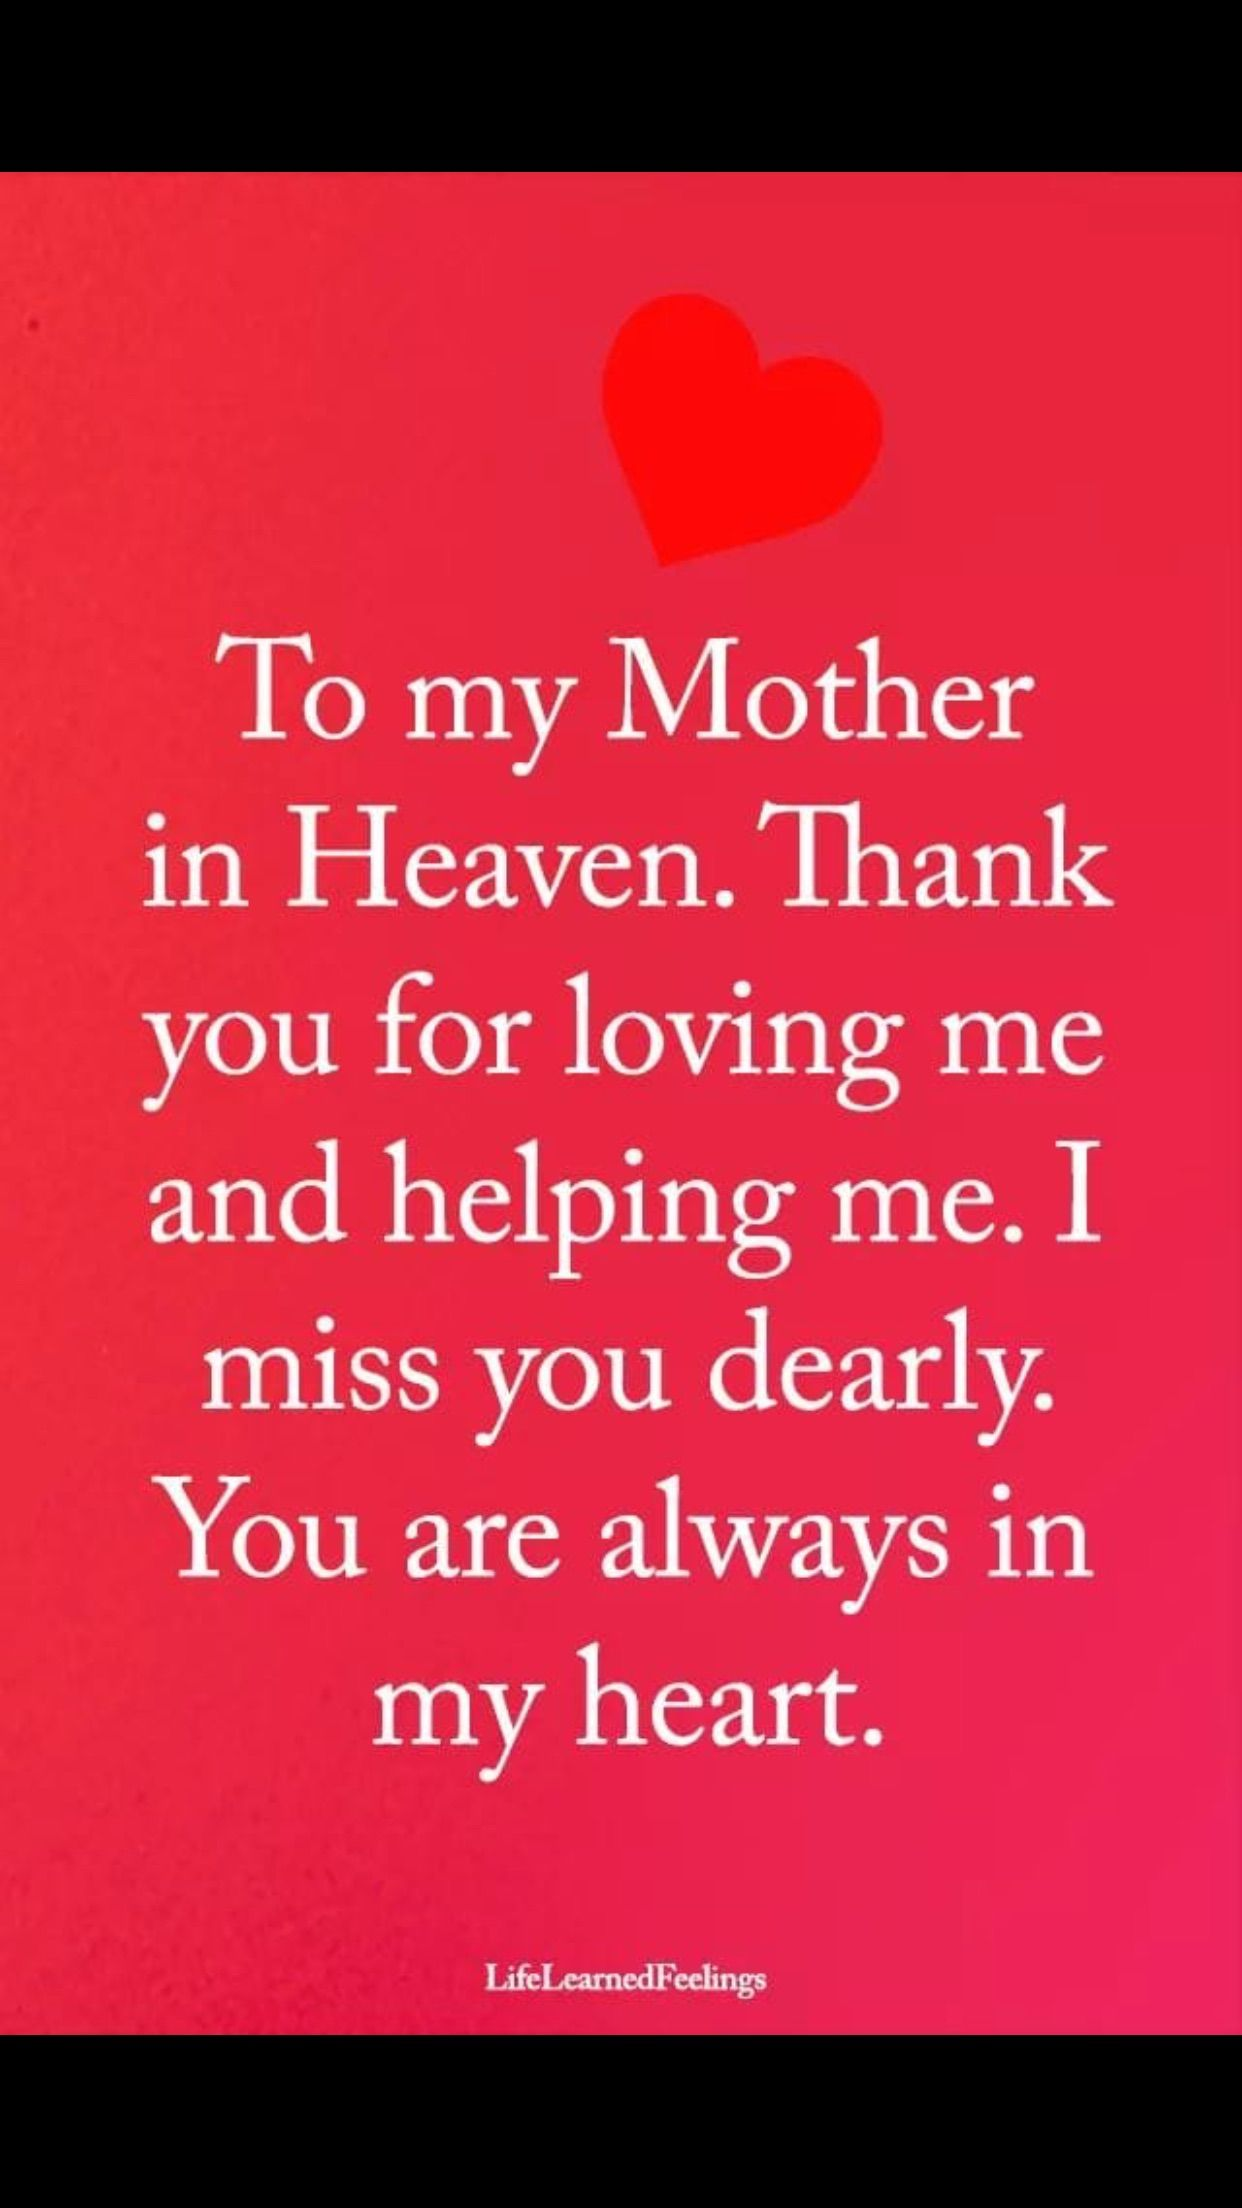 My Mother My Angel With Images Miss You Mom Mom I Miss